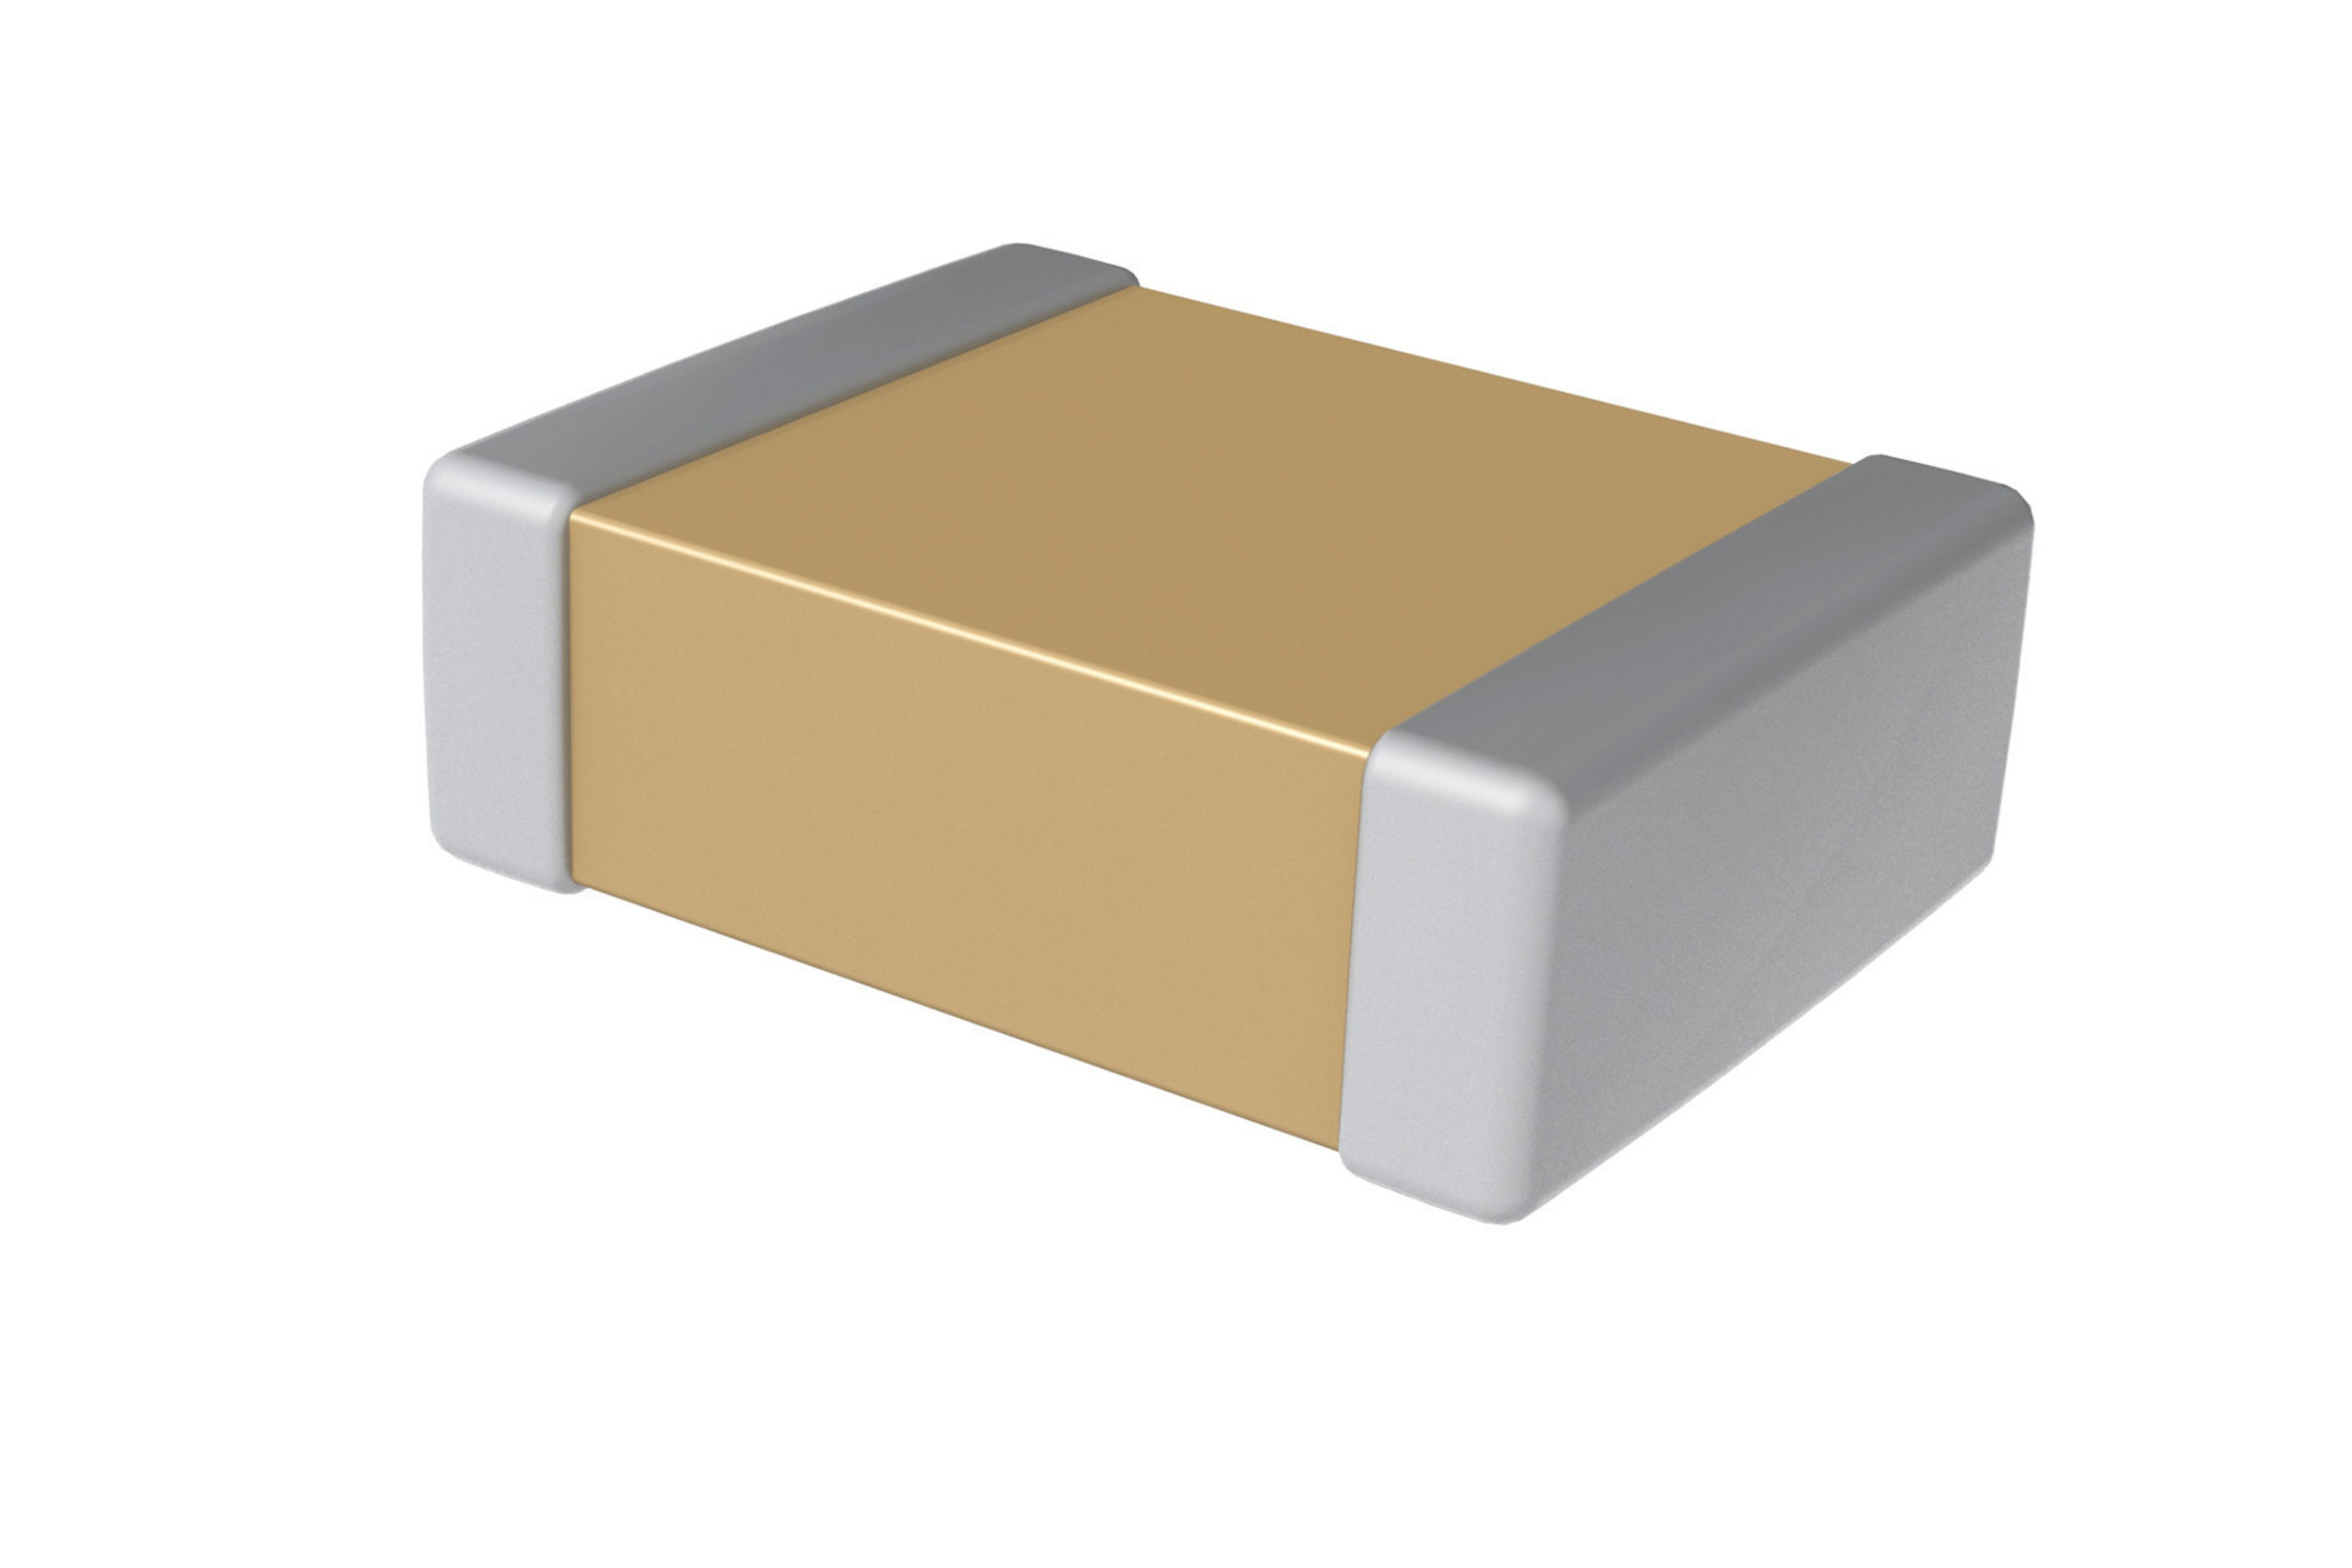 KEMET's new Industrial Grade High Temperature X7R Dielectric capacitors can utilize the full rated voltage at 175 degrees Celsius. They are also offered with a flexible termination option and are RoHS compliant without exemption.